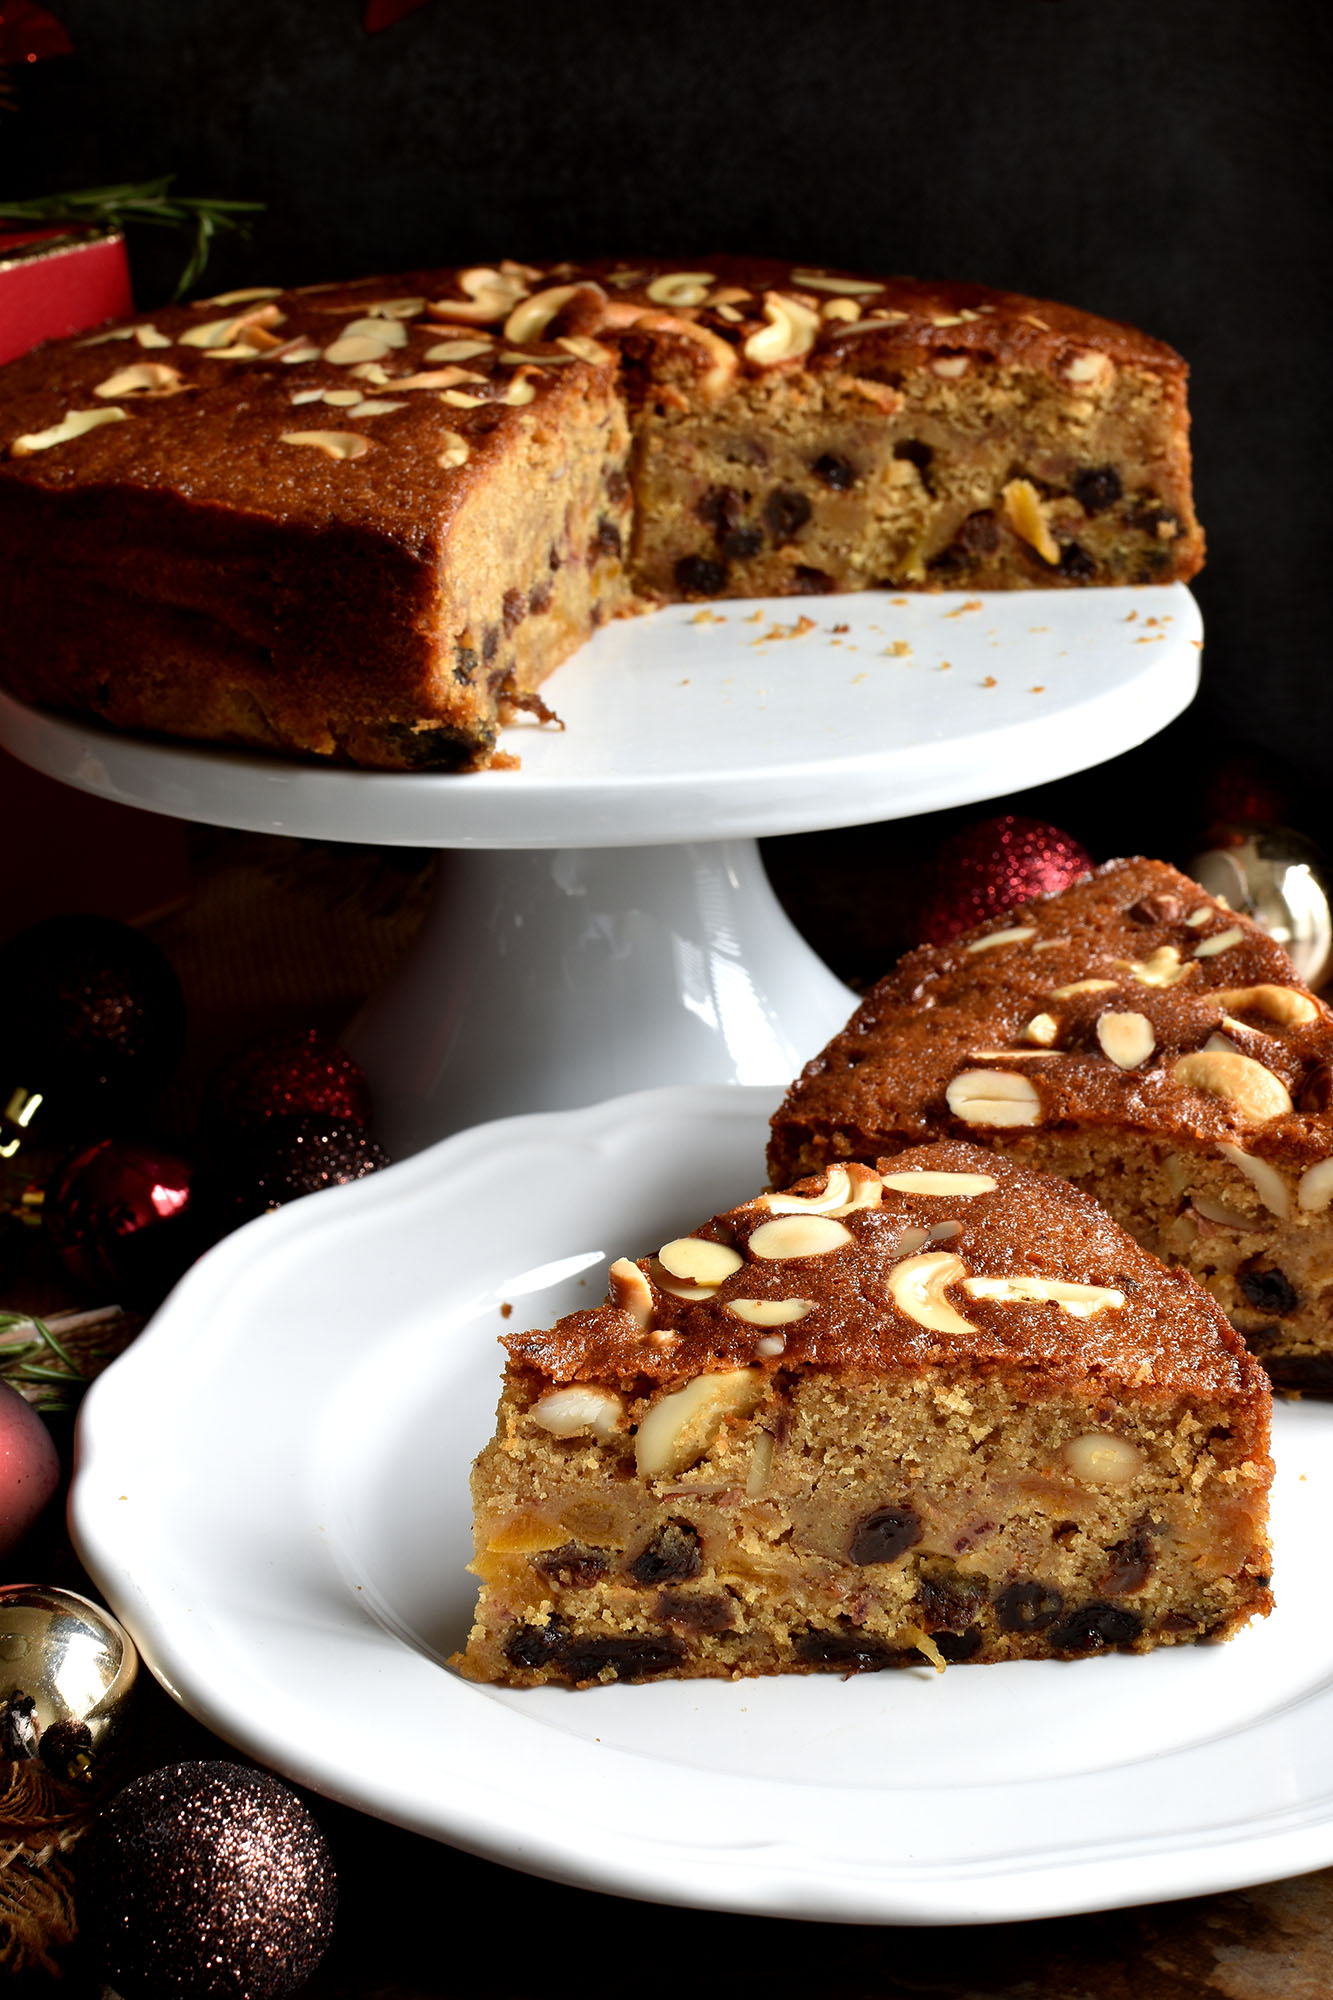 Christmas Fruit Cake (Non Alcoholic) - Pepper Delight #pepperdelightblog #recipe #cake #thanksgiving #newyear #fruitcake #cake #dryfruitcake #christmas #holidayrecipes #nonalcoholic #party #festivals